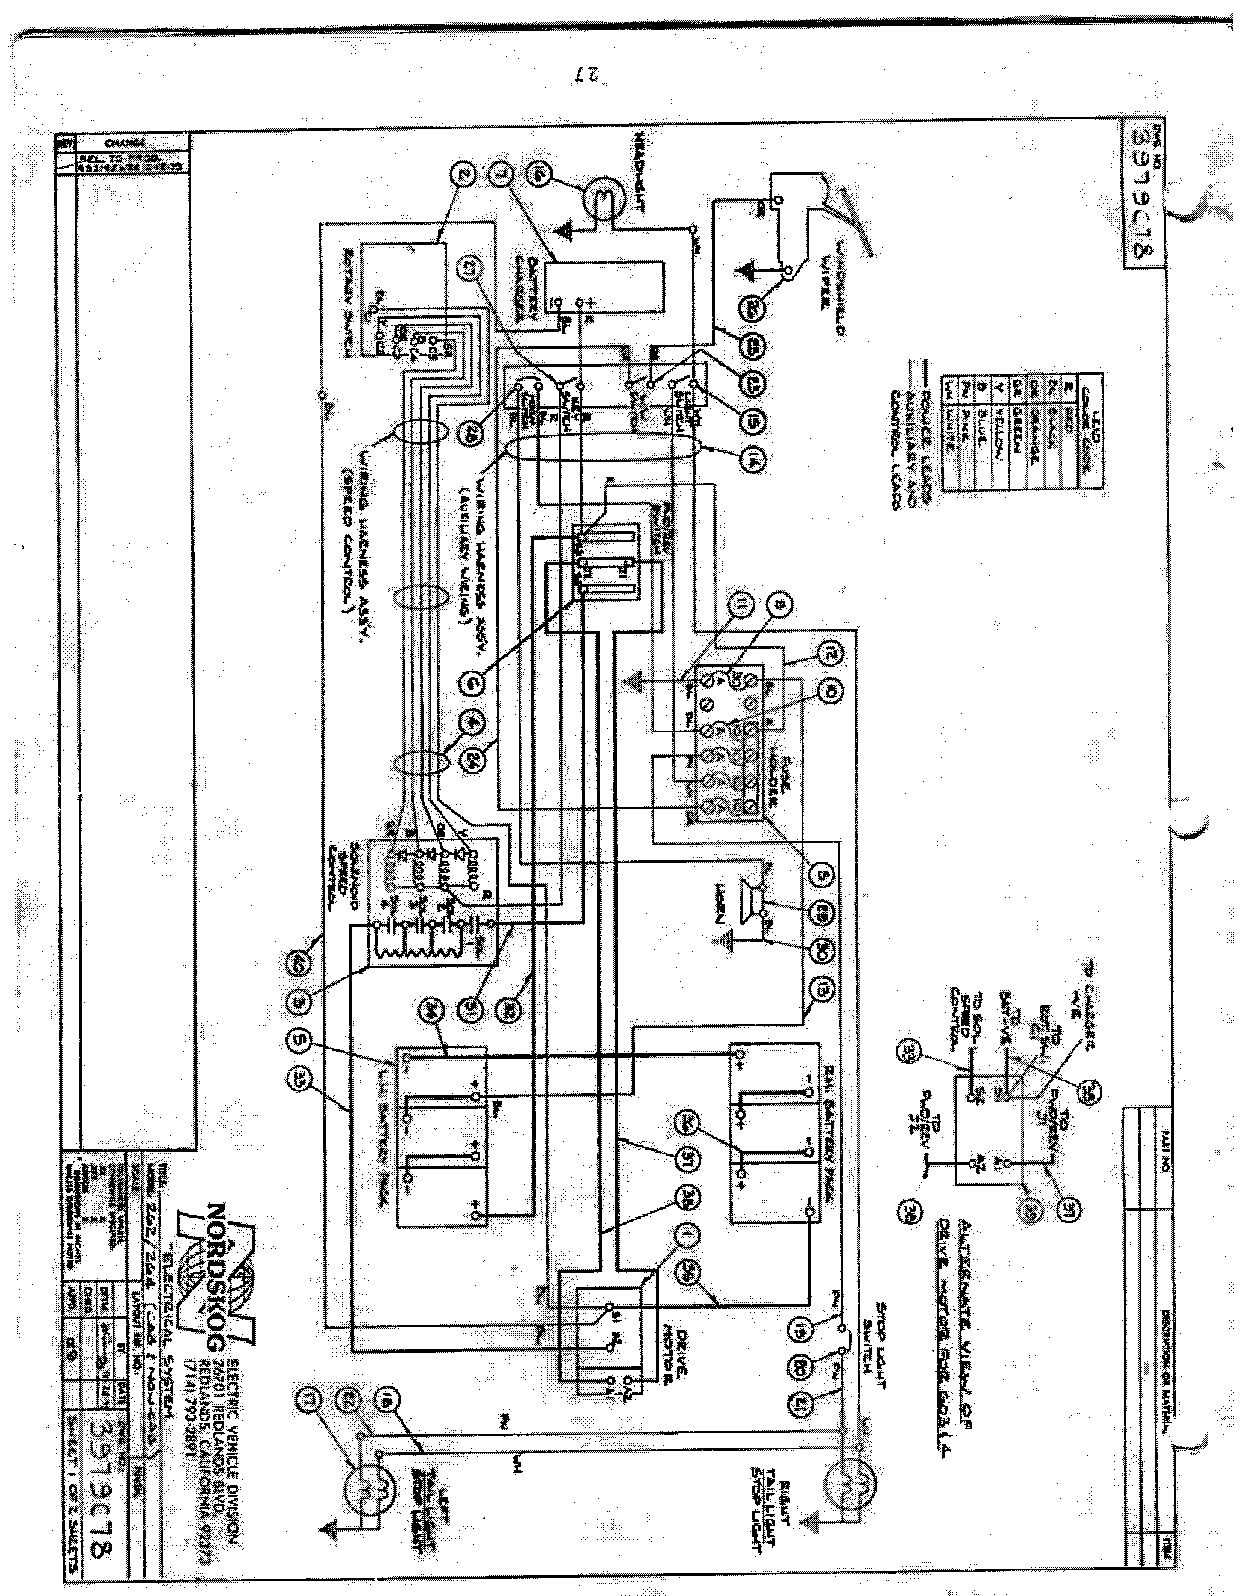 Tomberlin Emerge Wiring Diagram